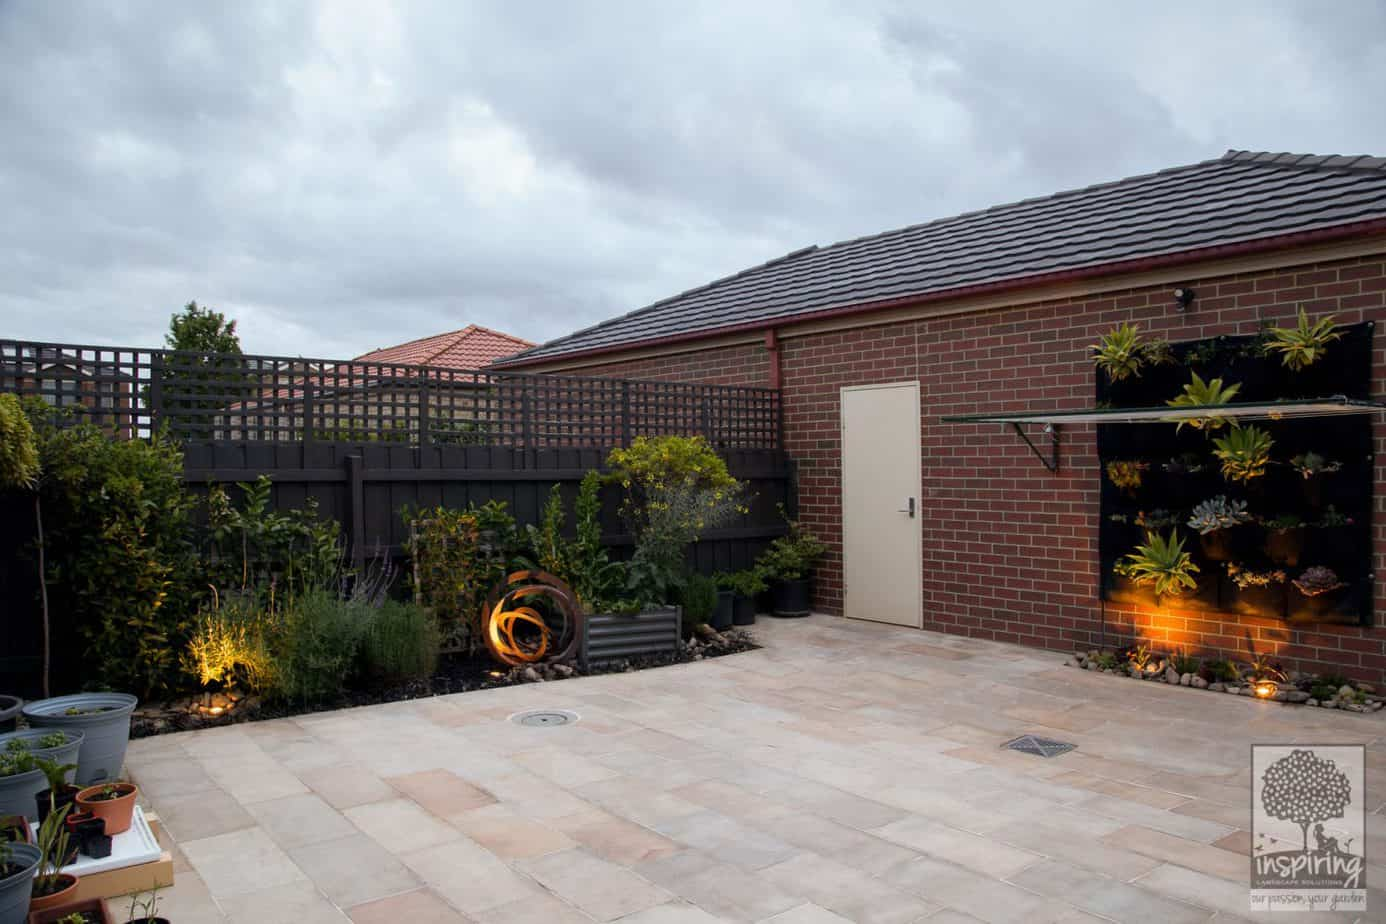 Courtyard garden design with sandstone paving and edible planting